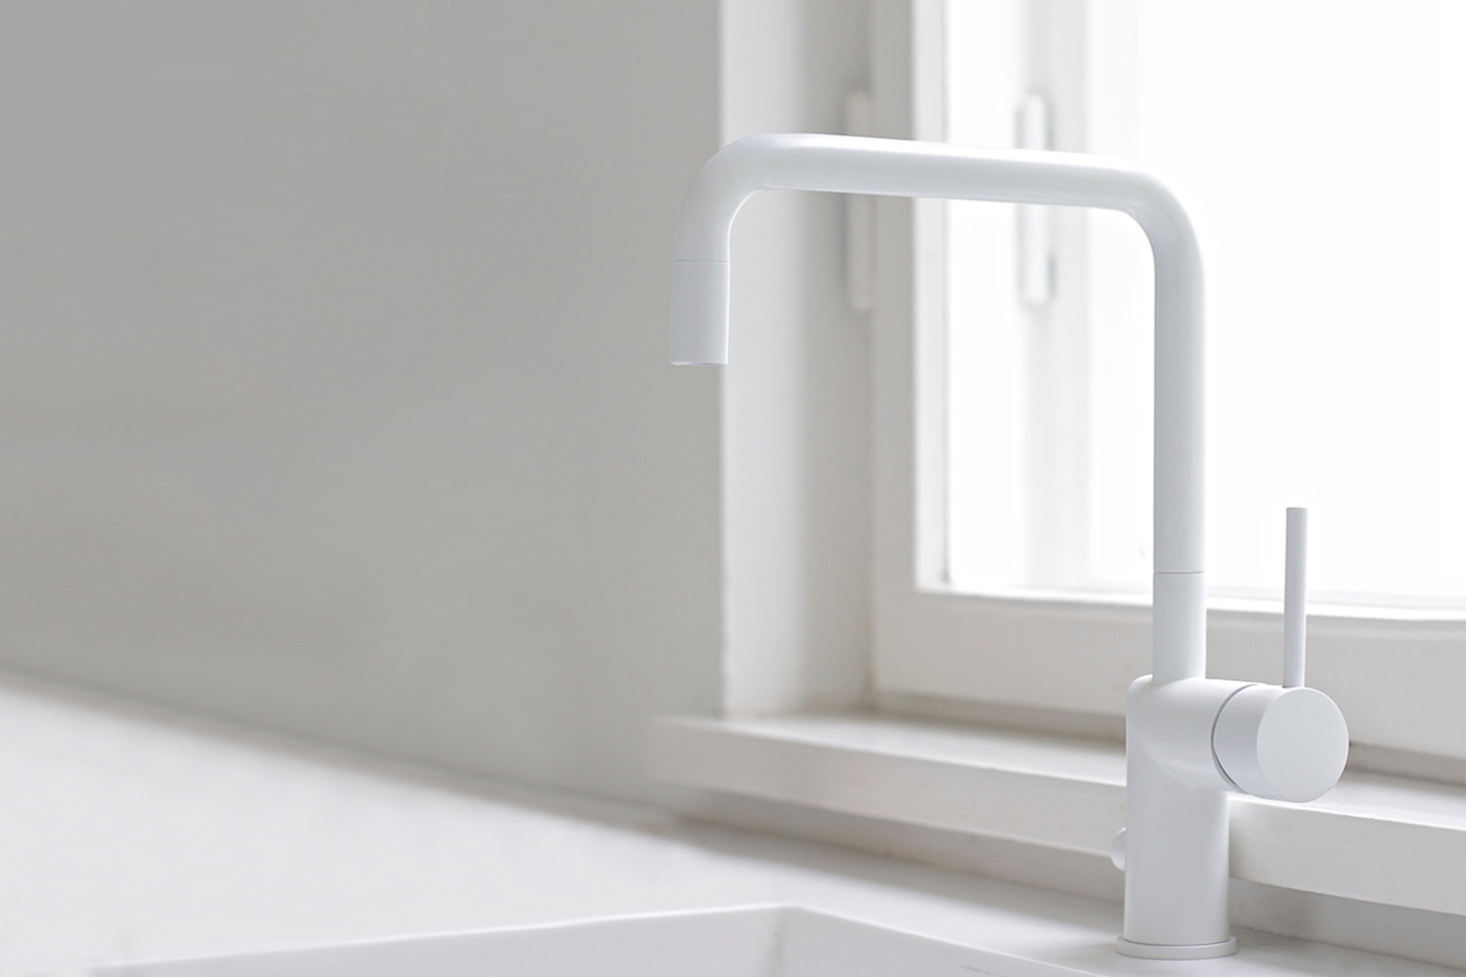 vola contemporary minimalist single hole kitchen faucet with side lever handle and 90 degree spout in white - the ultimate guide to luxury plumbing by the delight of design